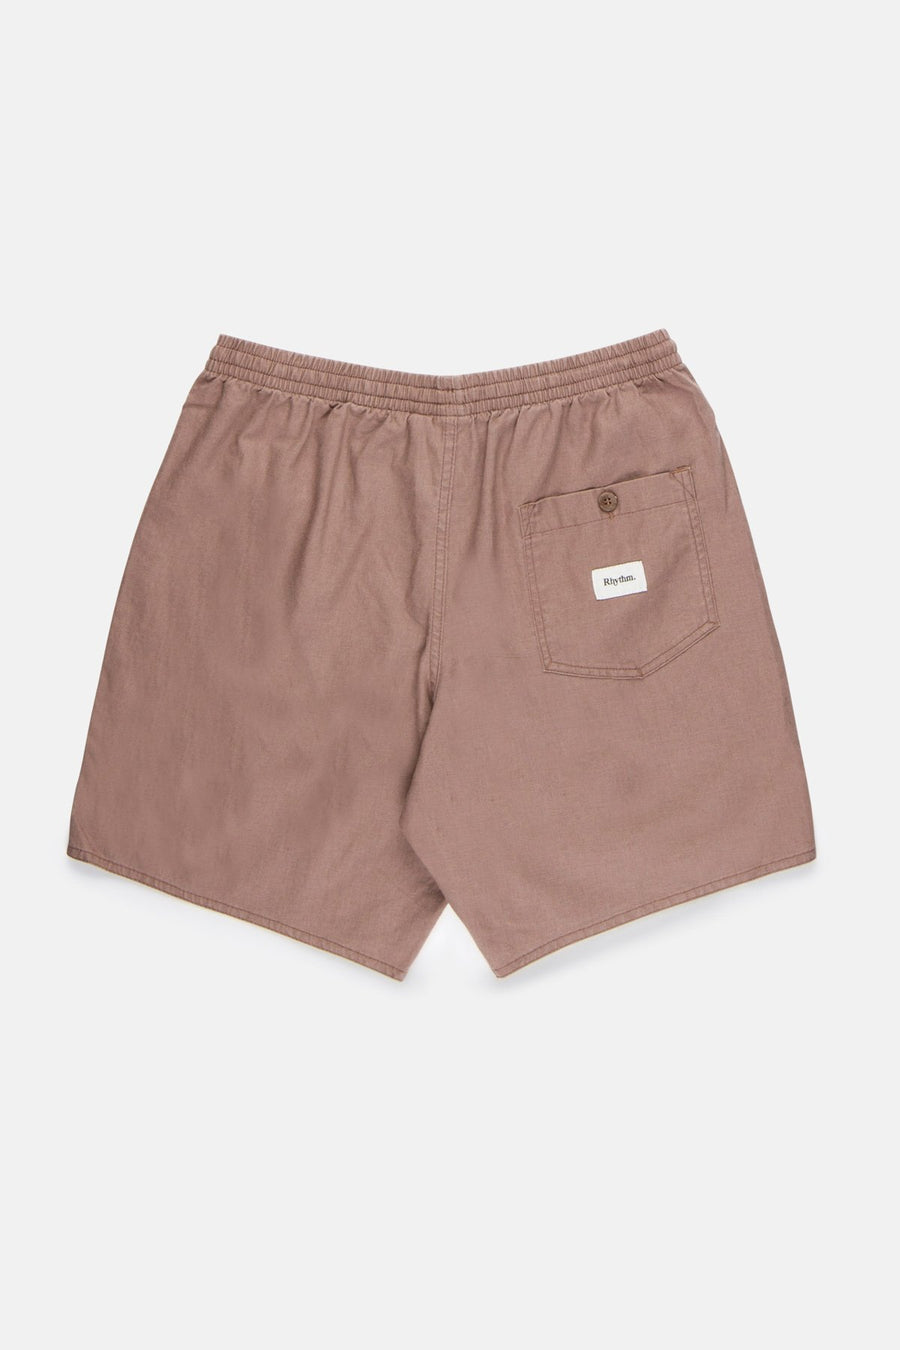 RHYTHM Linen Jam Shorts Berry